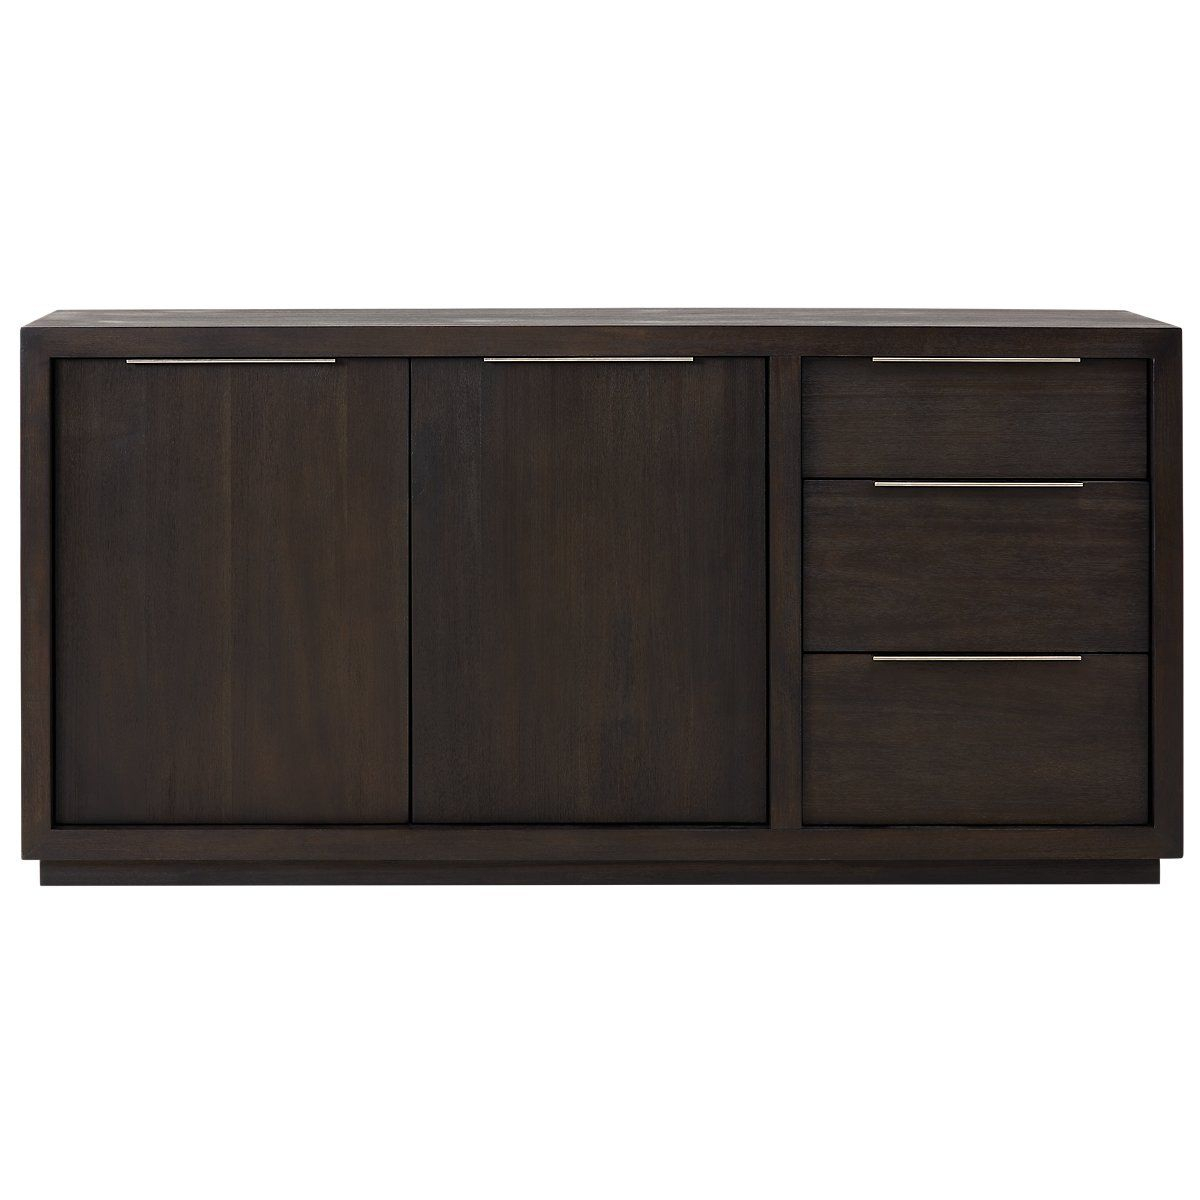 Candide Dark Gray Wood Credenza | Dining Room | Grey Wood With Most Popular Candide Wood Credenzas (View 4 of 20)